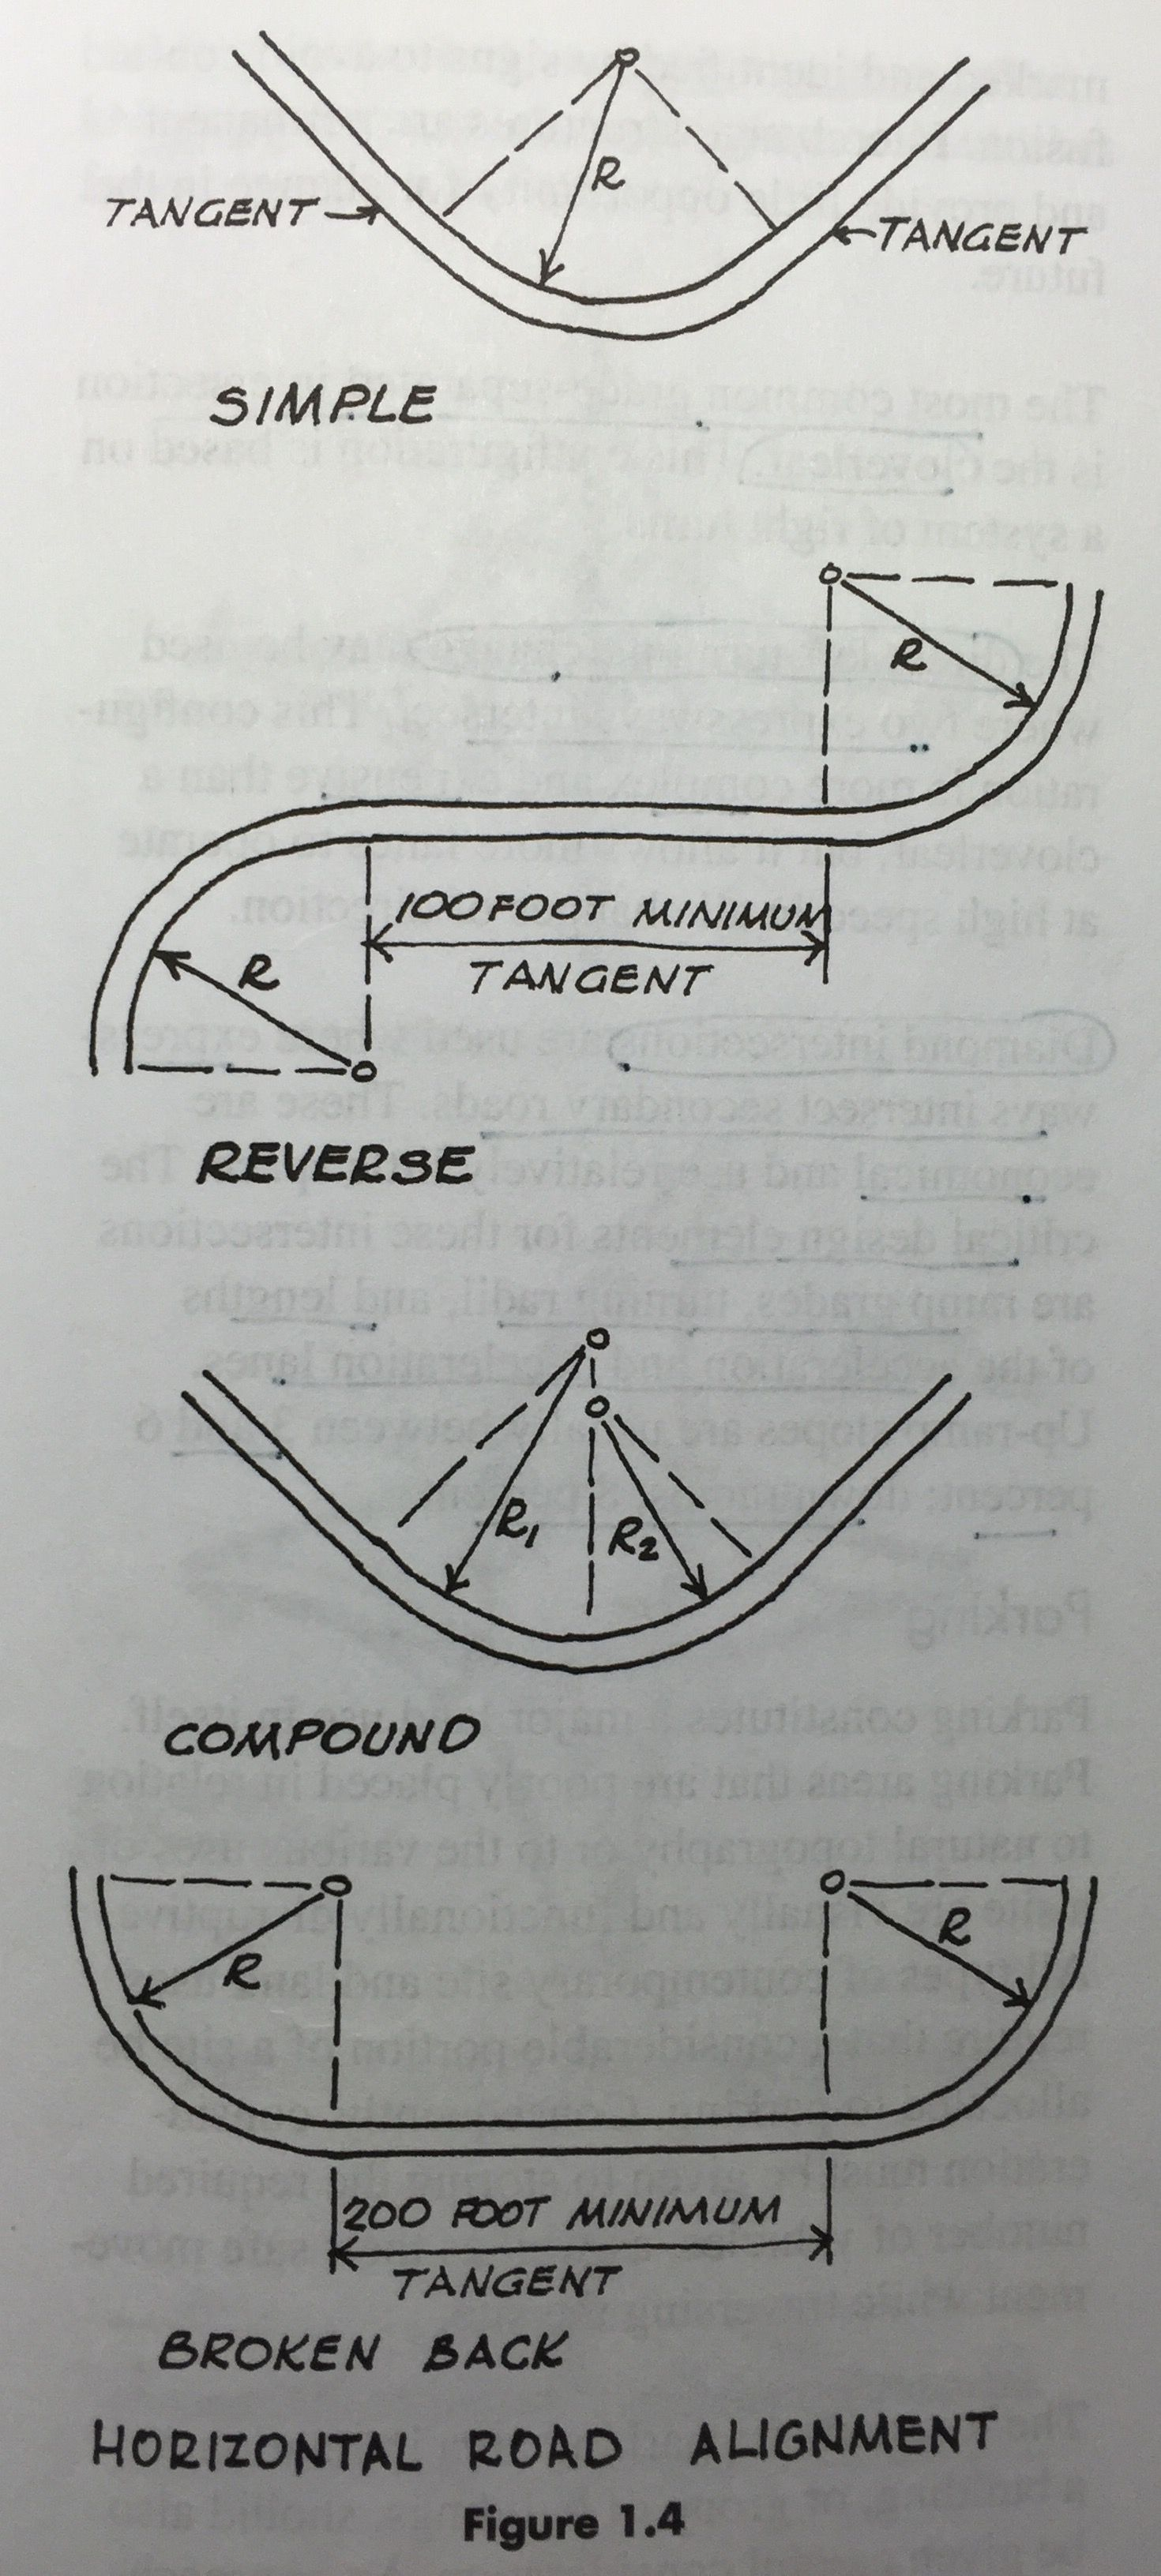 small resolution of roads consist of tangents straight lines and curves generally arcs of a circle broken back two curves in same direction separated by 200ft tangent